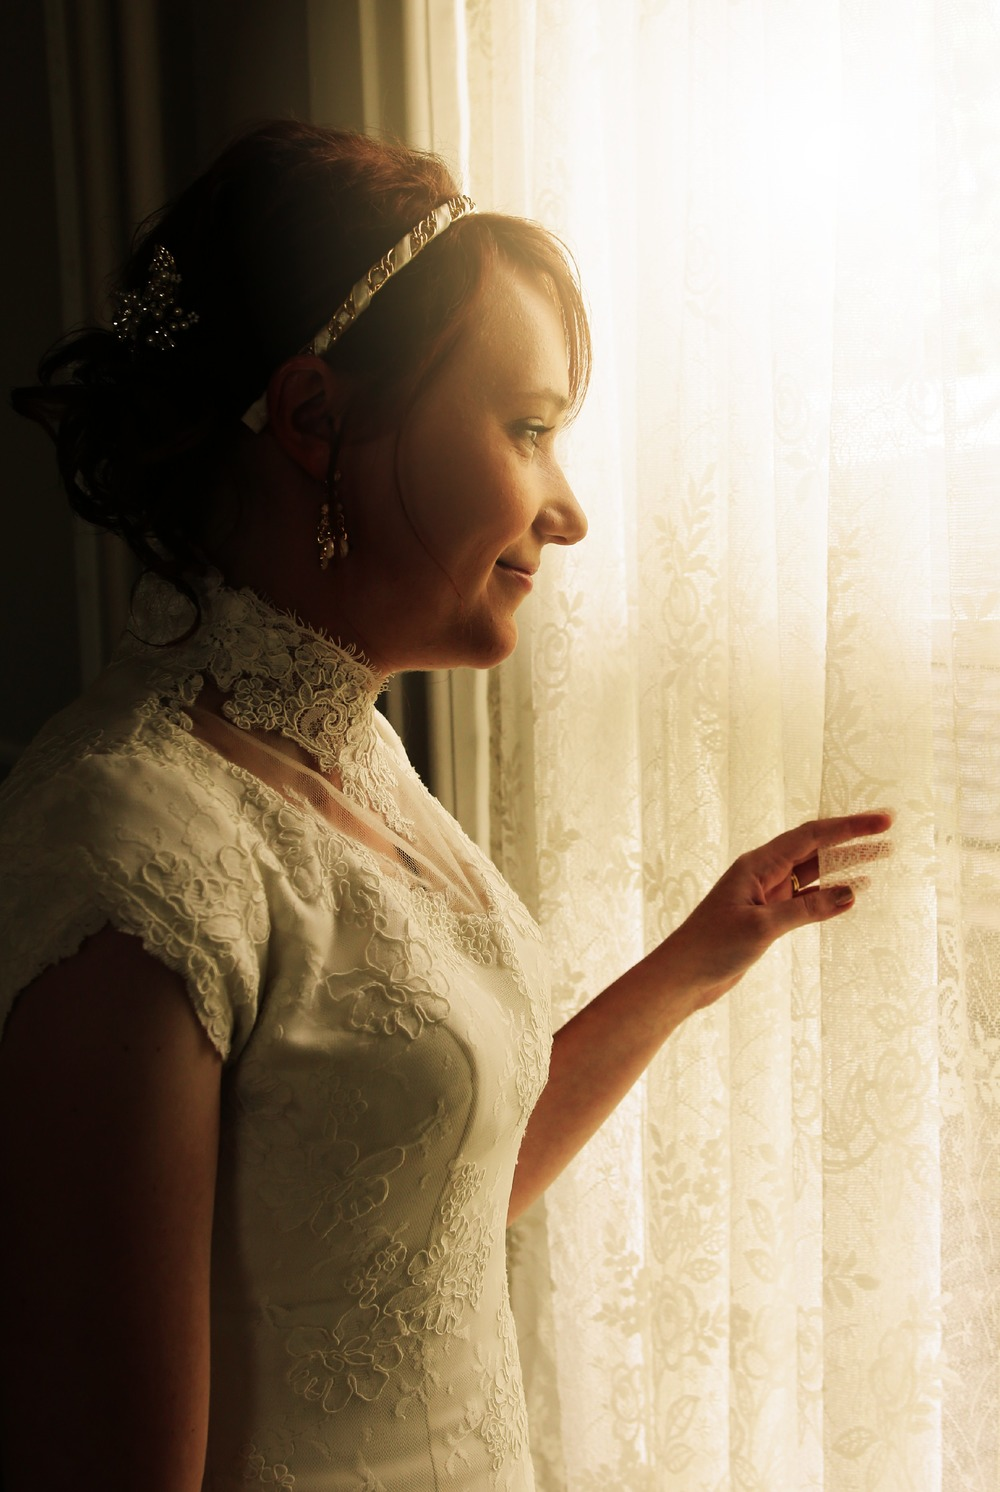 Bountiful Artistic wedding Bridal photography